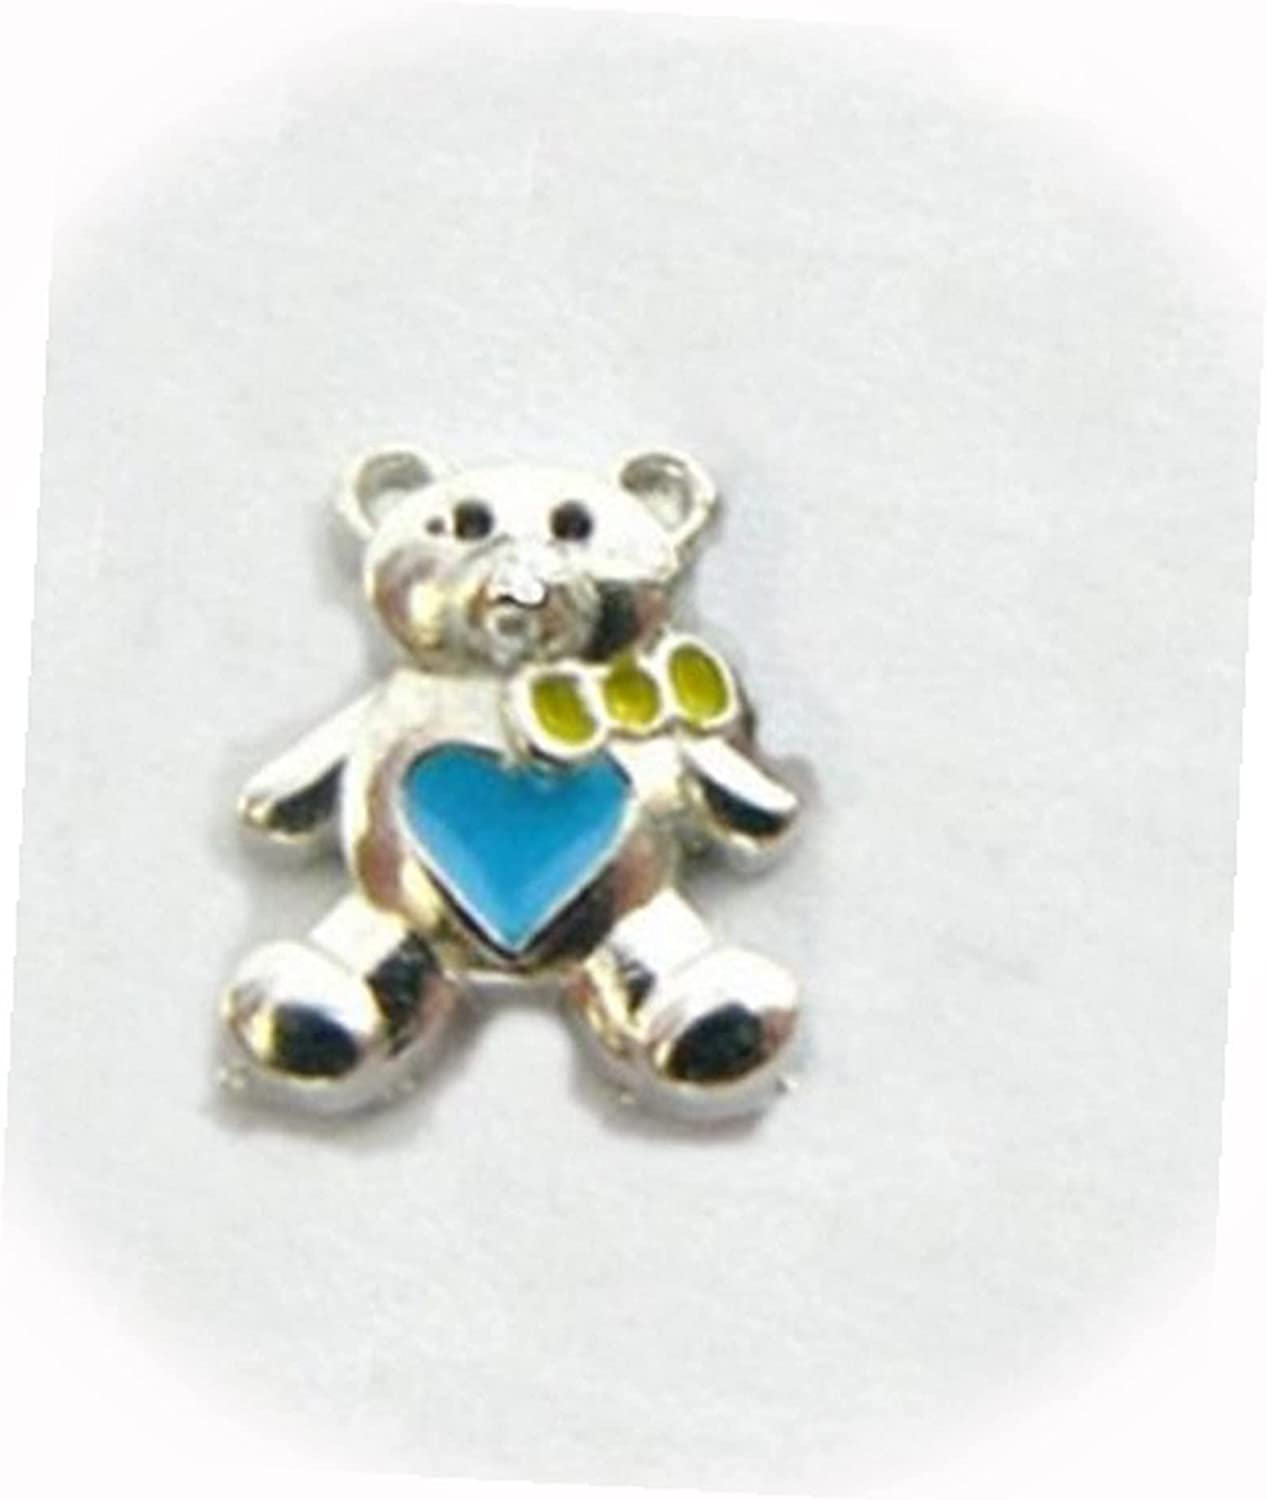 New Bear with Blue Heart Silver Floating Over item Oakland Mall handling ☆ for Memory Charm Lo 9mm